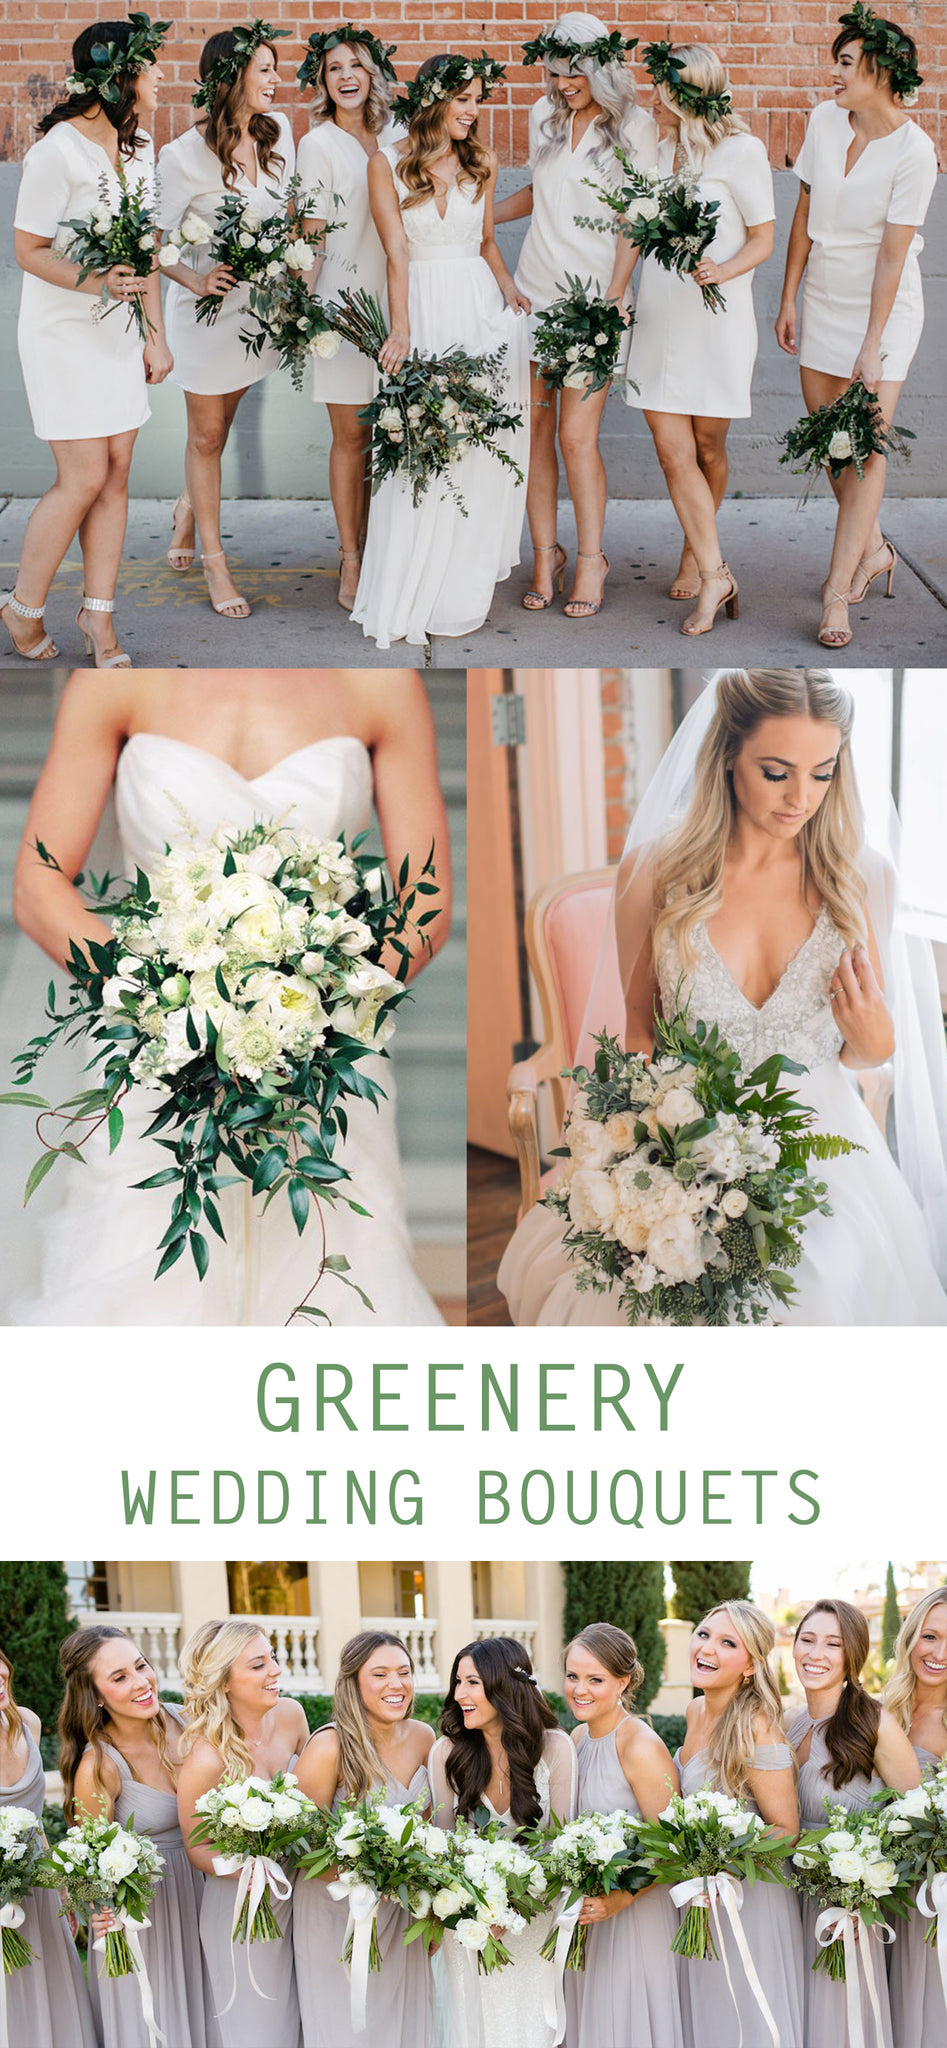 Greenery Wedding Bouquet - Greenery Wedding Decor Ideas - Pretty Collected